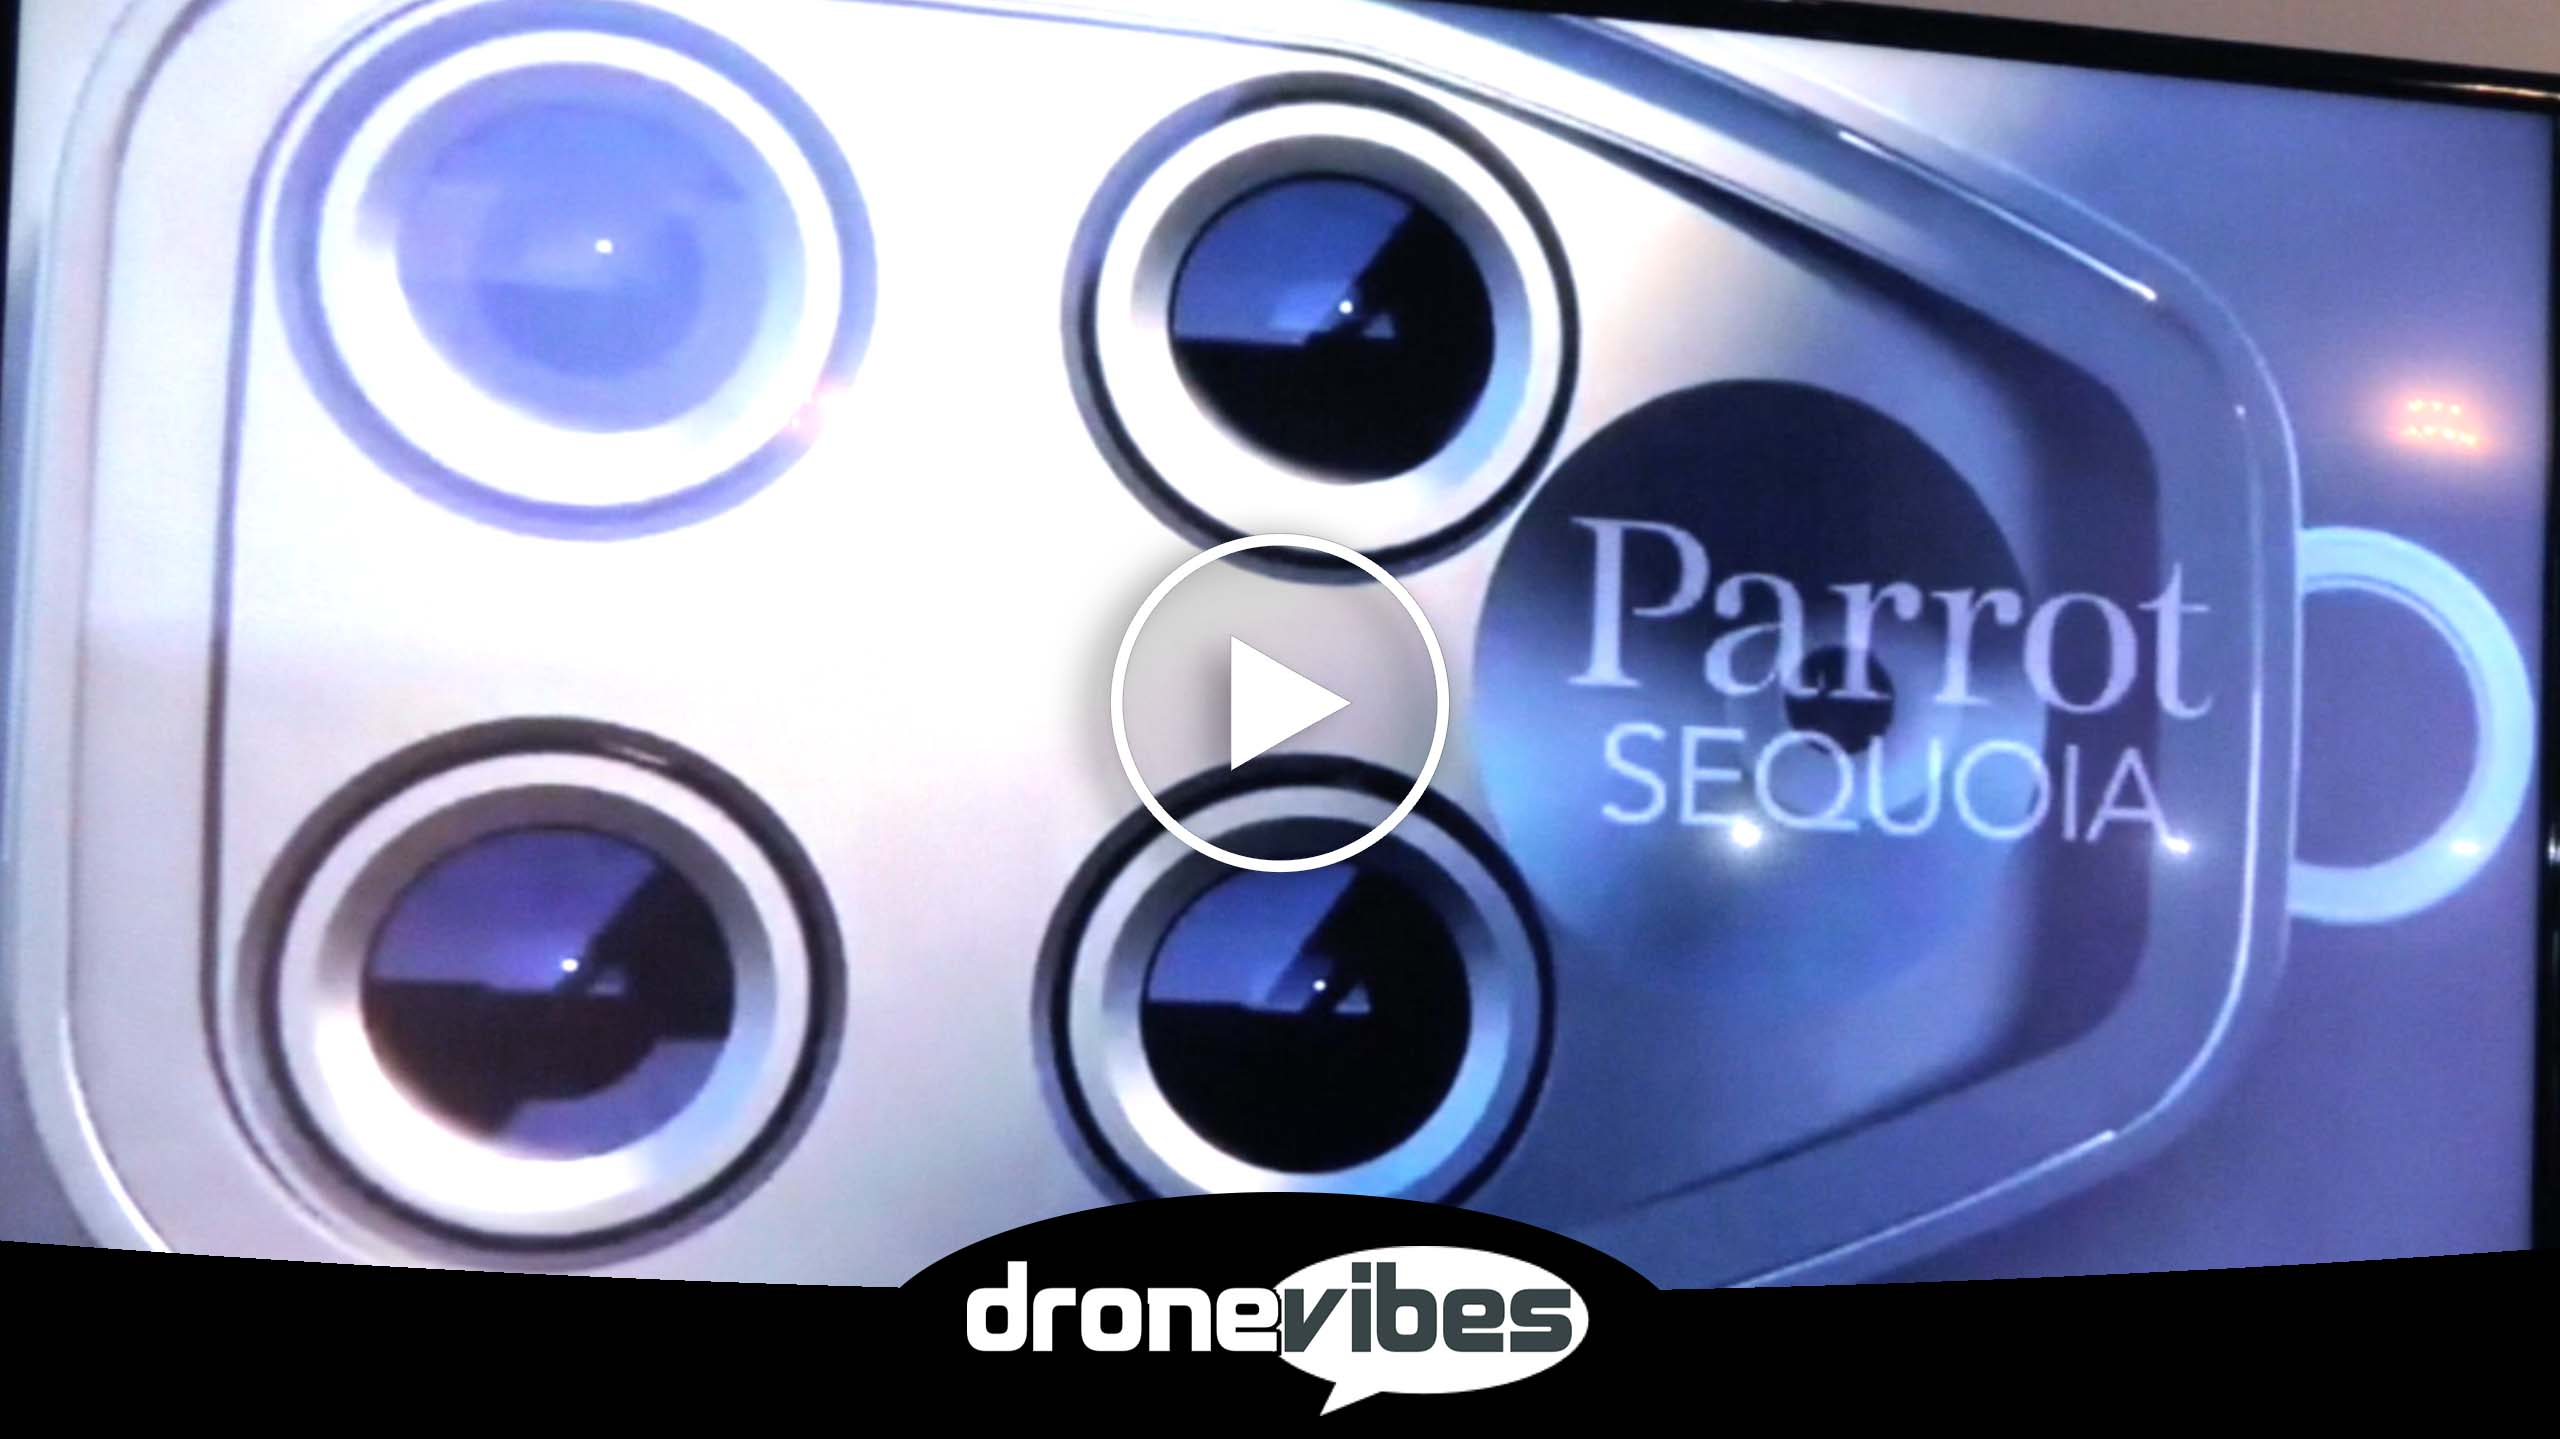 Parrot Sequoia – Multispectral Drone Camera/Sensor, Designed for Agri-Business & Crop Management Applications